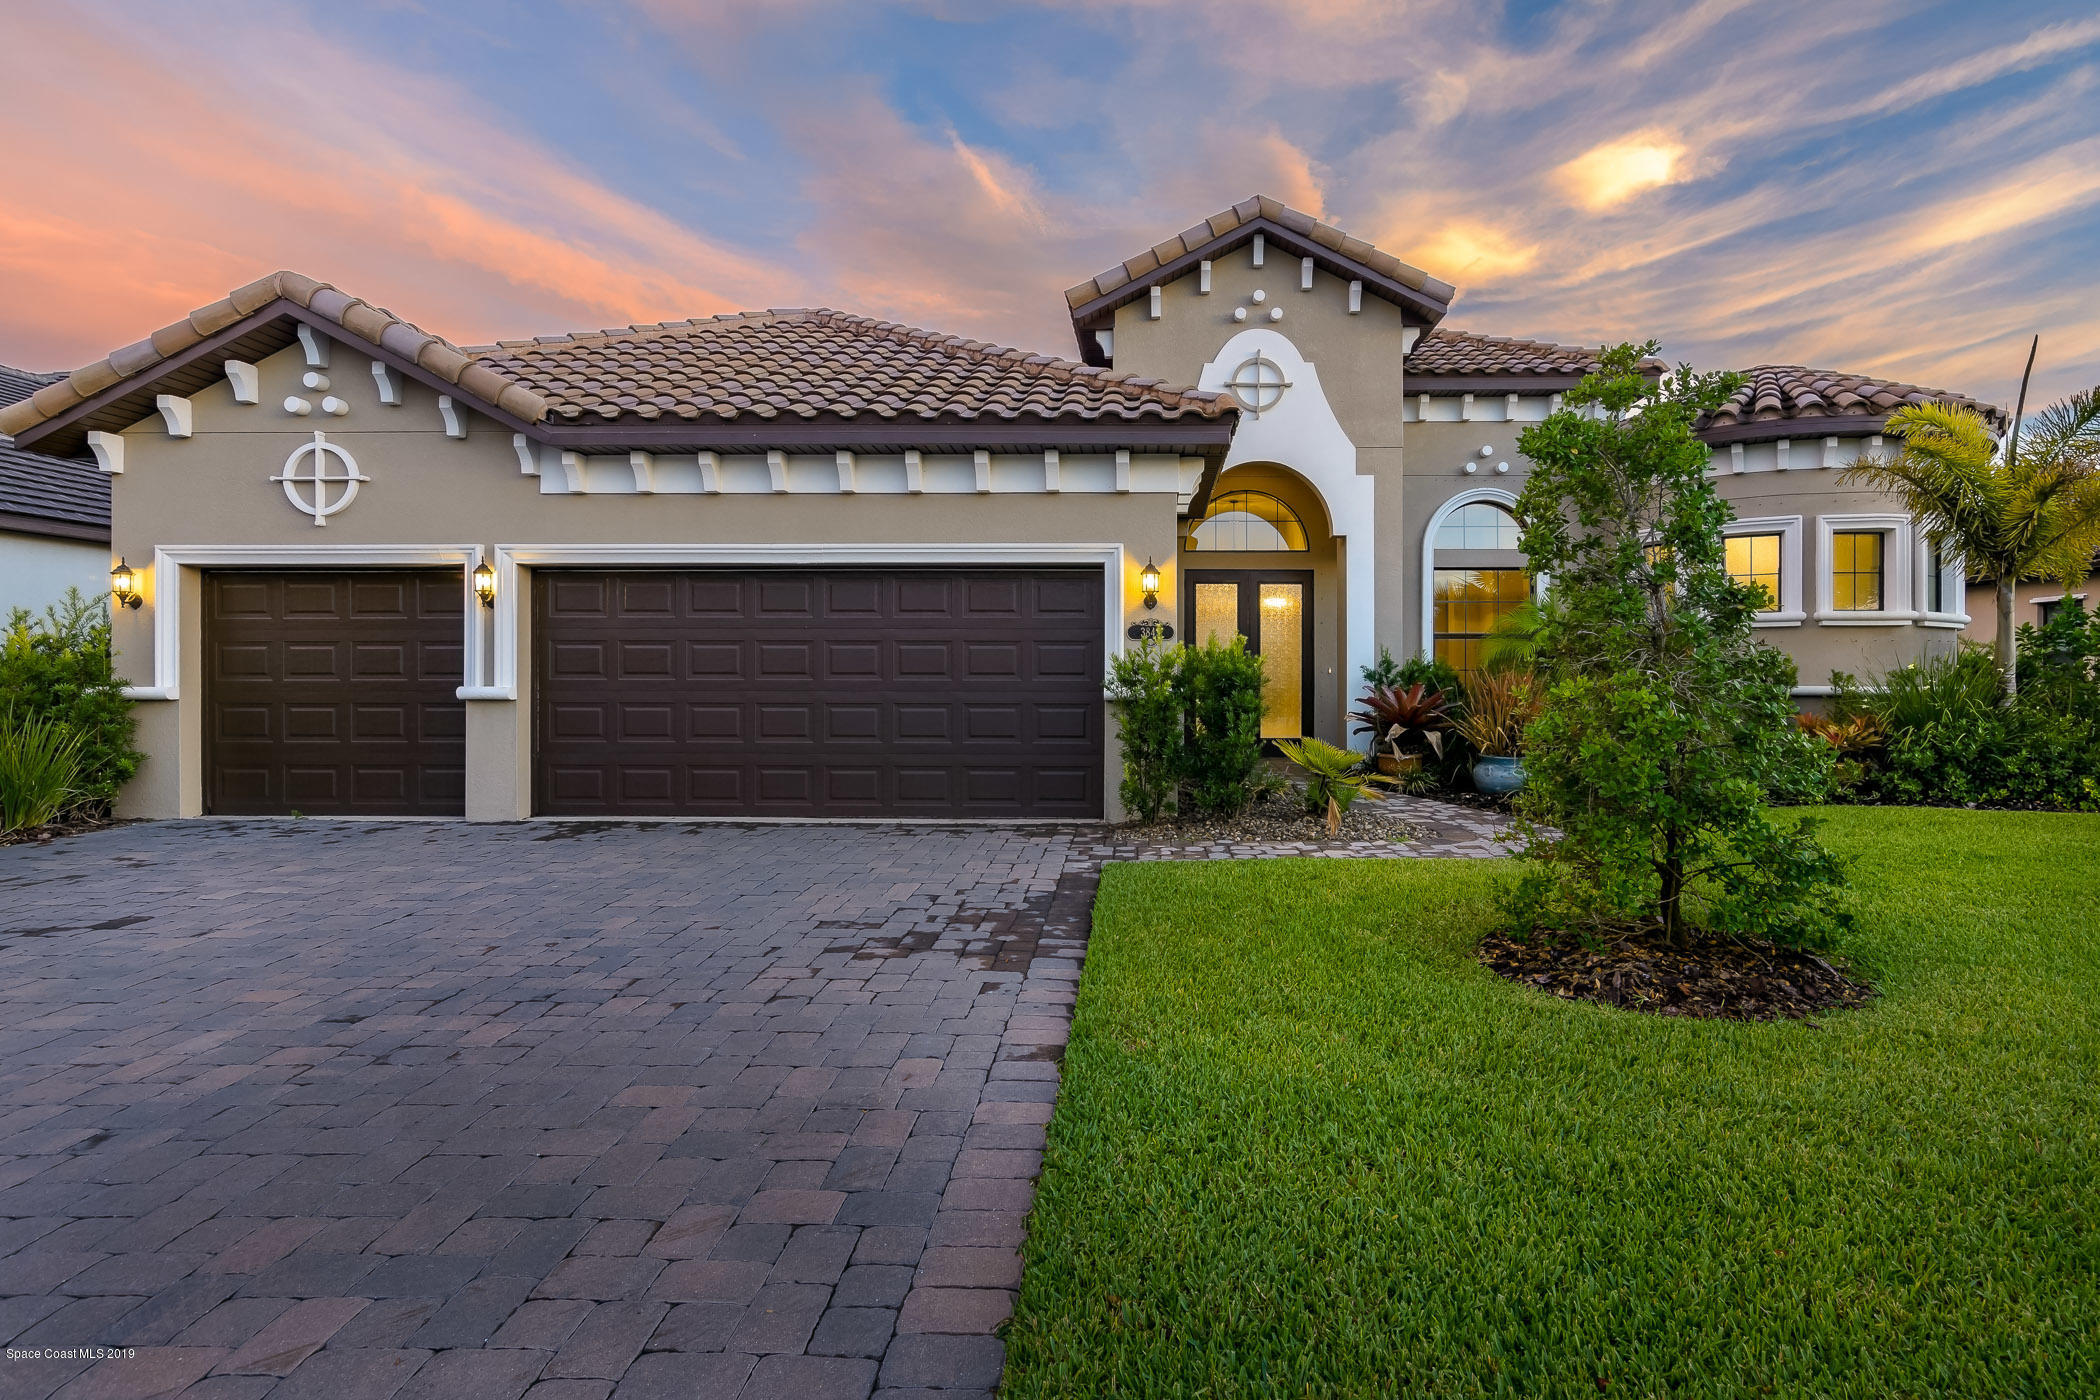 Single Family Homes for Sale at 3843 Craigston Melbourne, Florida 32940 United States